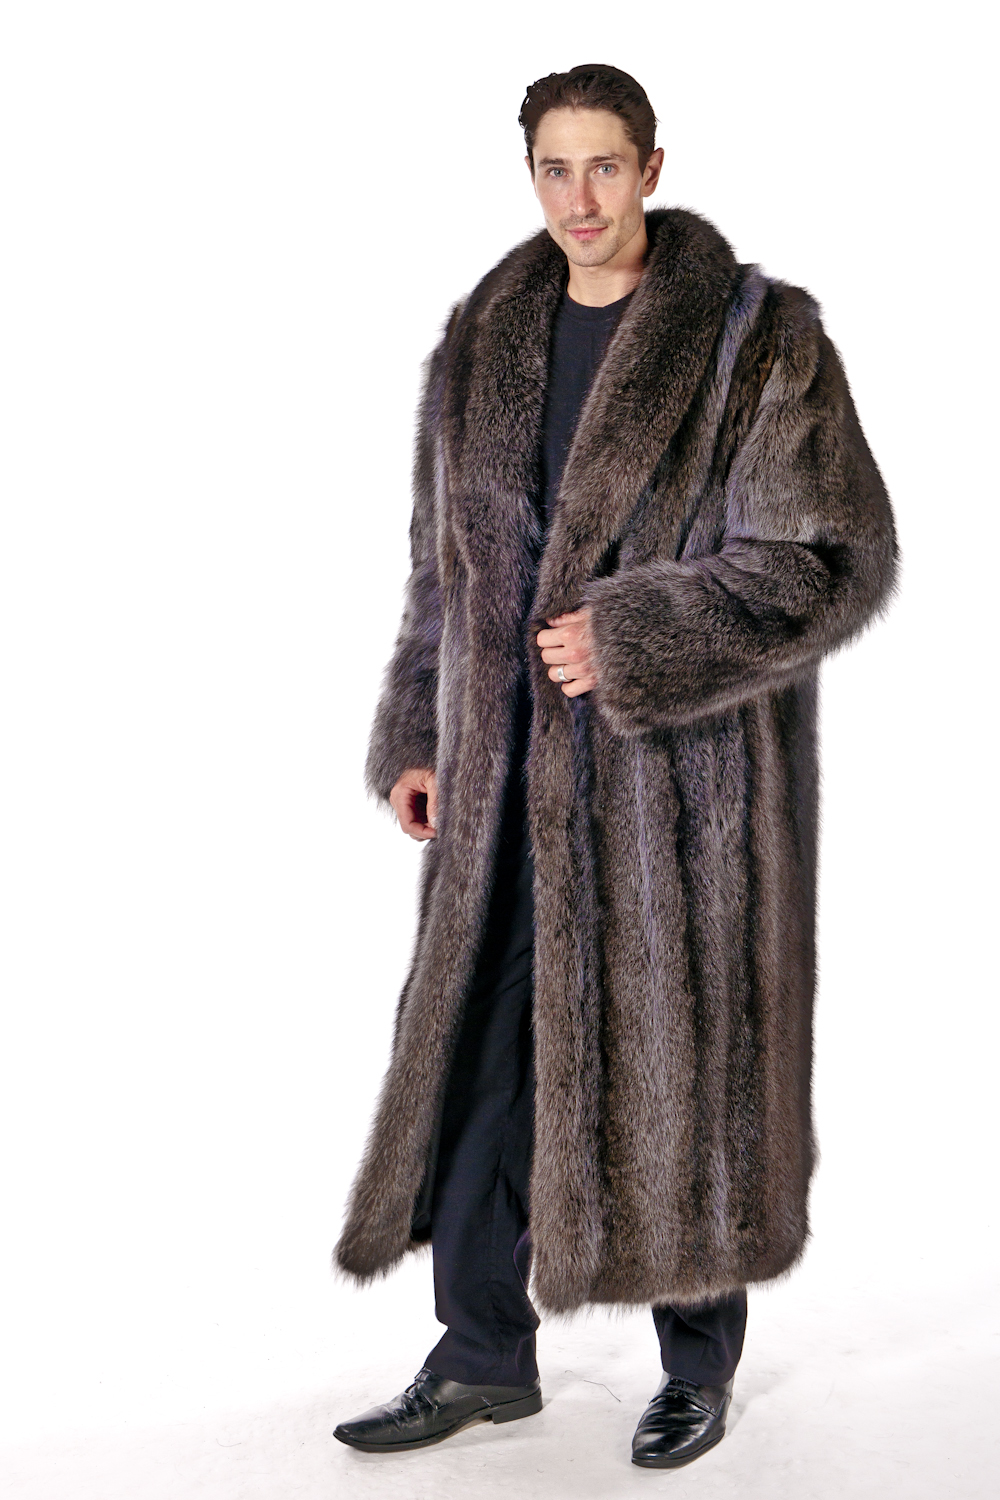 Mens Raccon Fur Coats and Jackets are sold at Madisonavemall.com